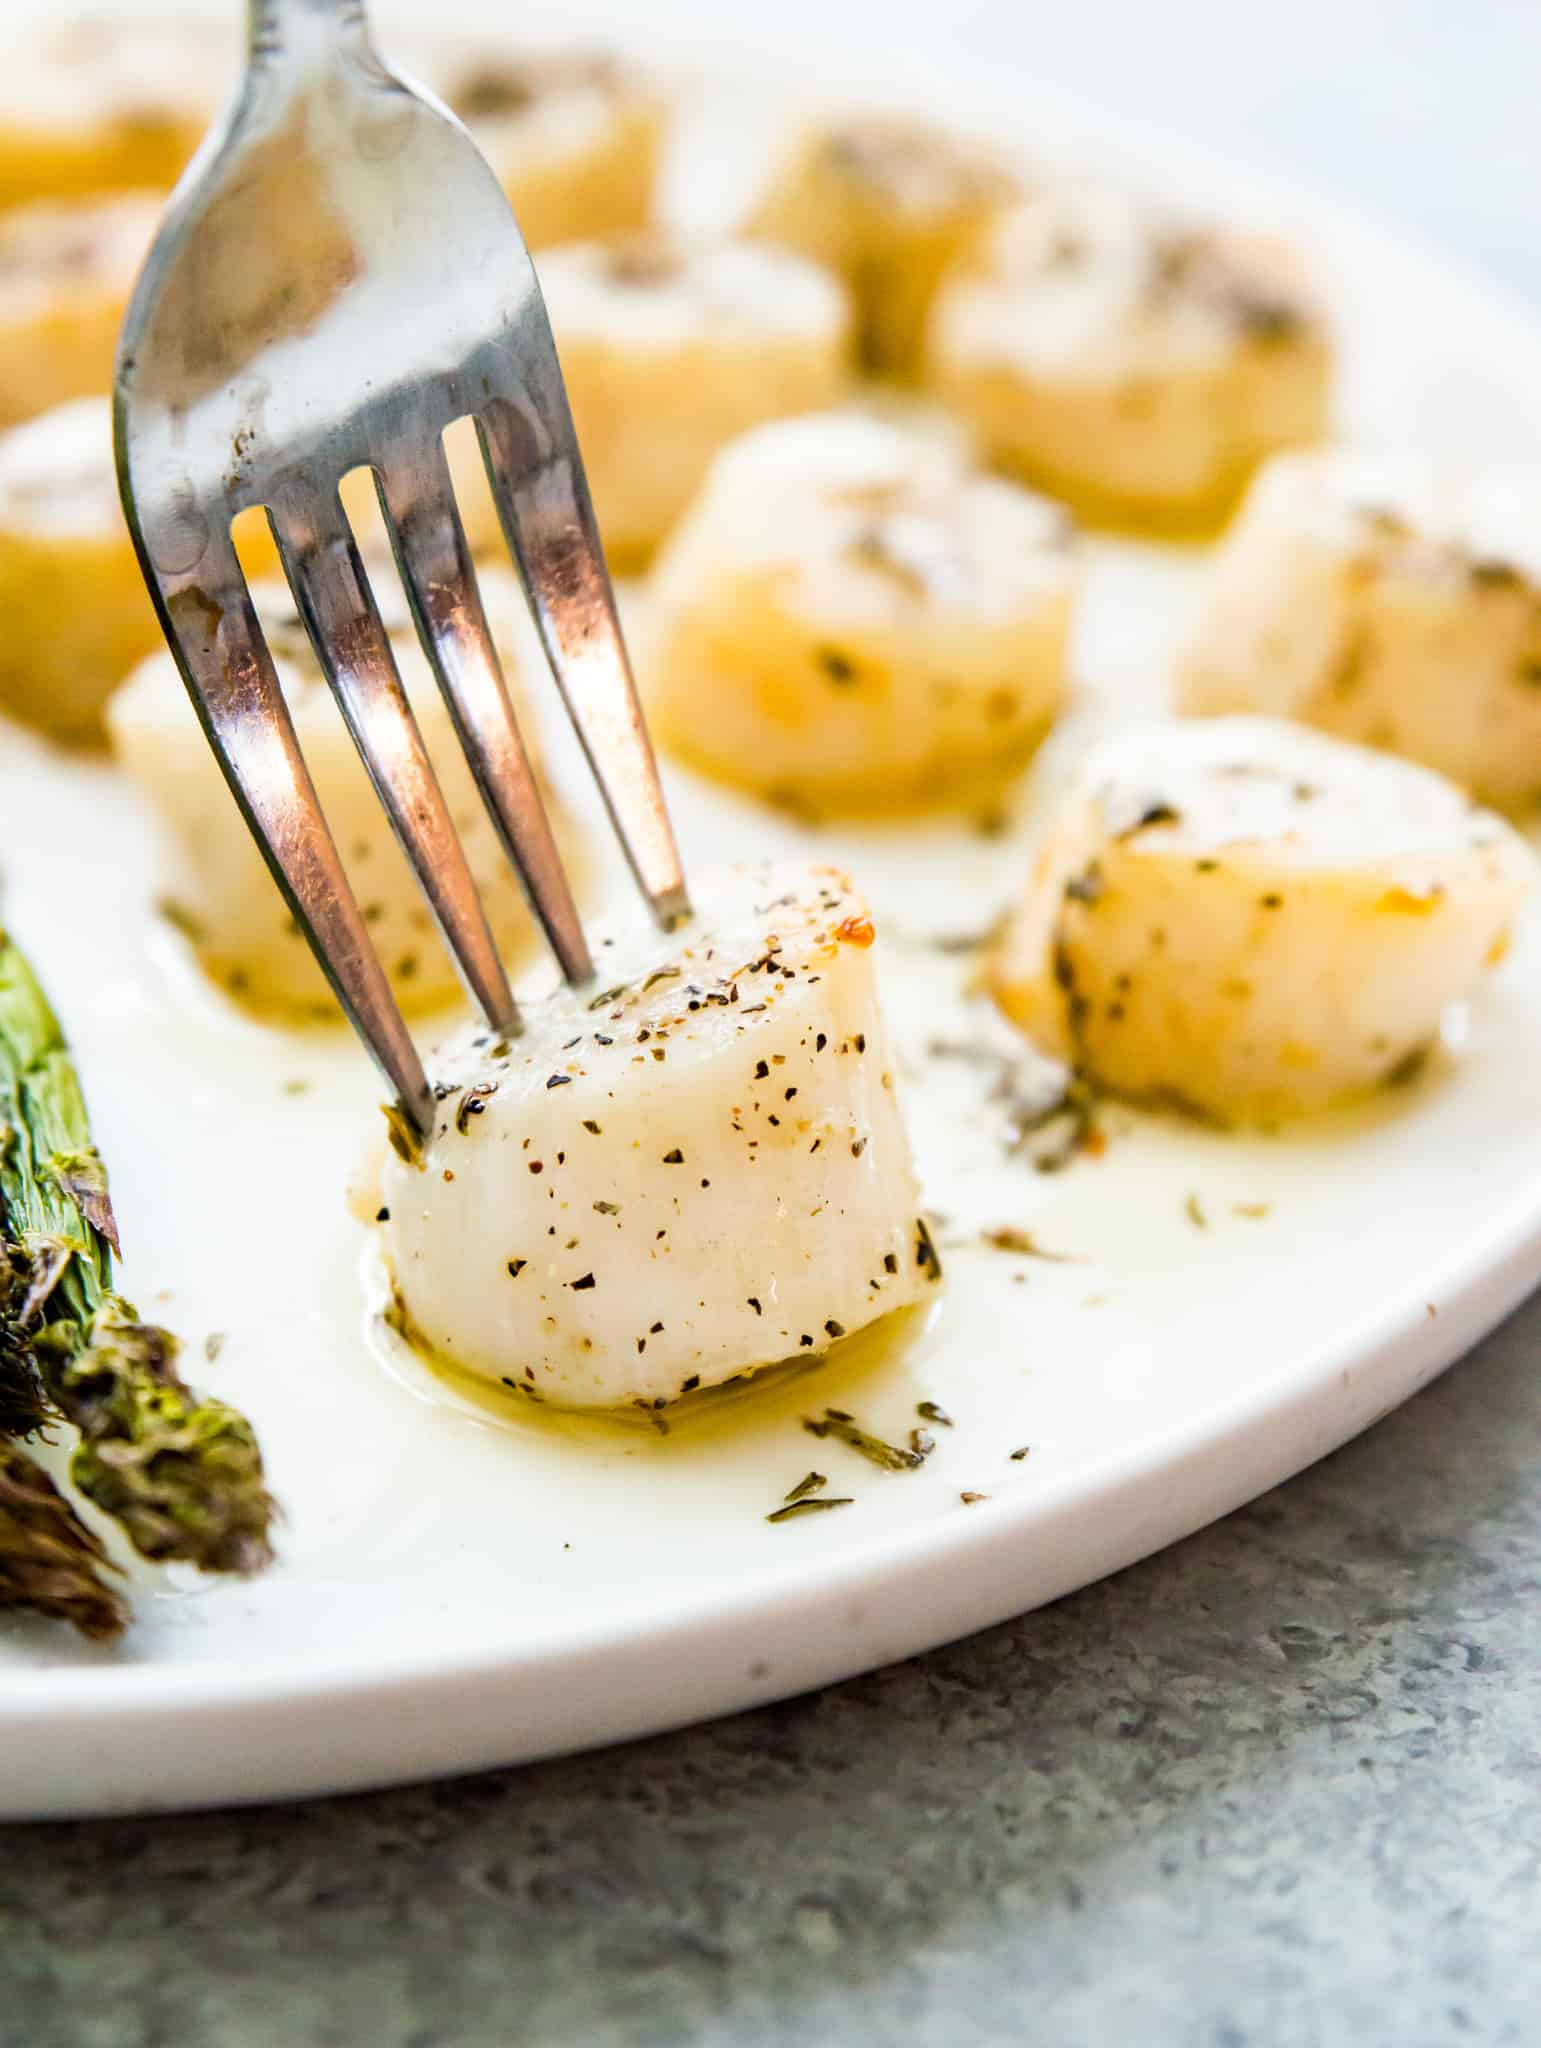 A plate of cooked scallops with a fork in one of the scallops